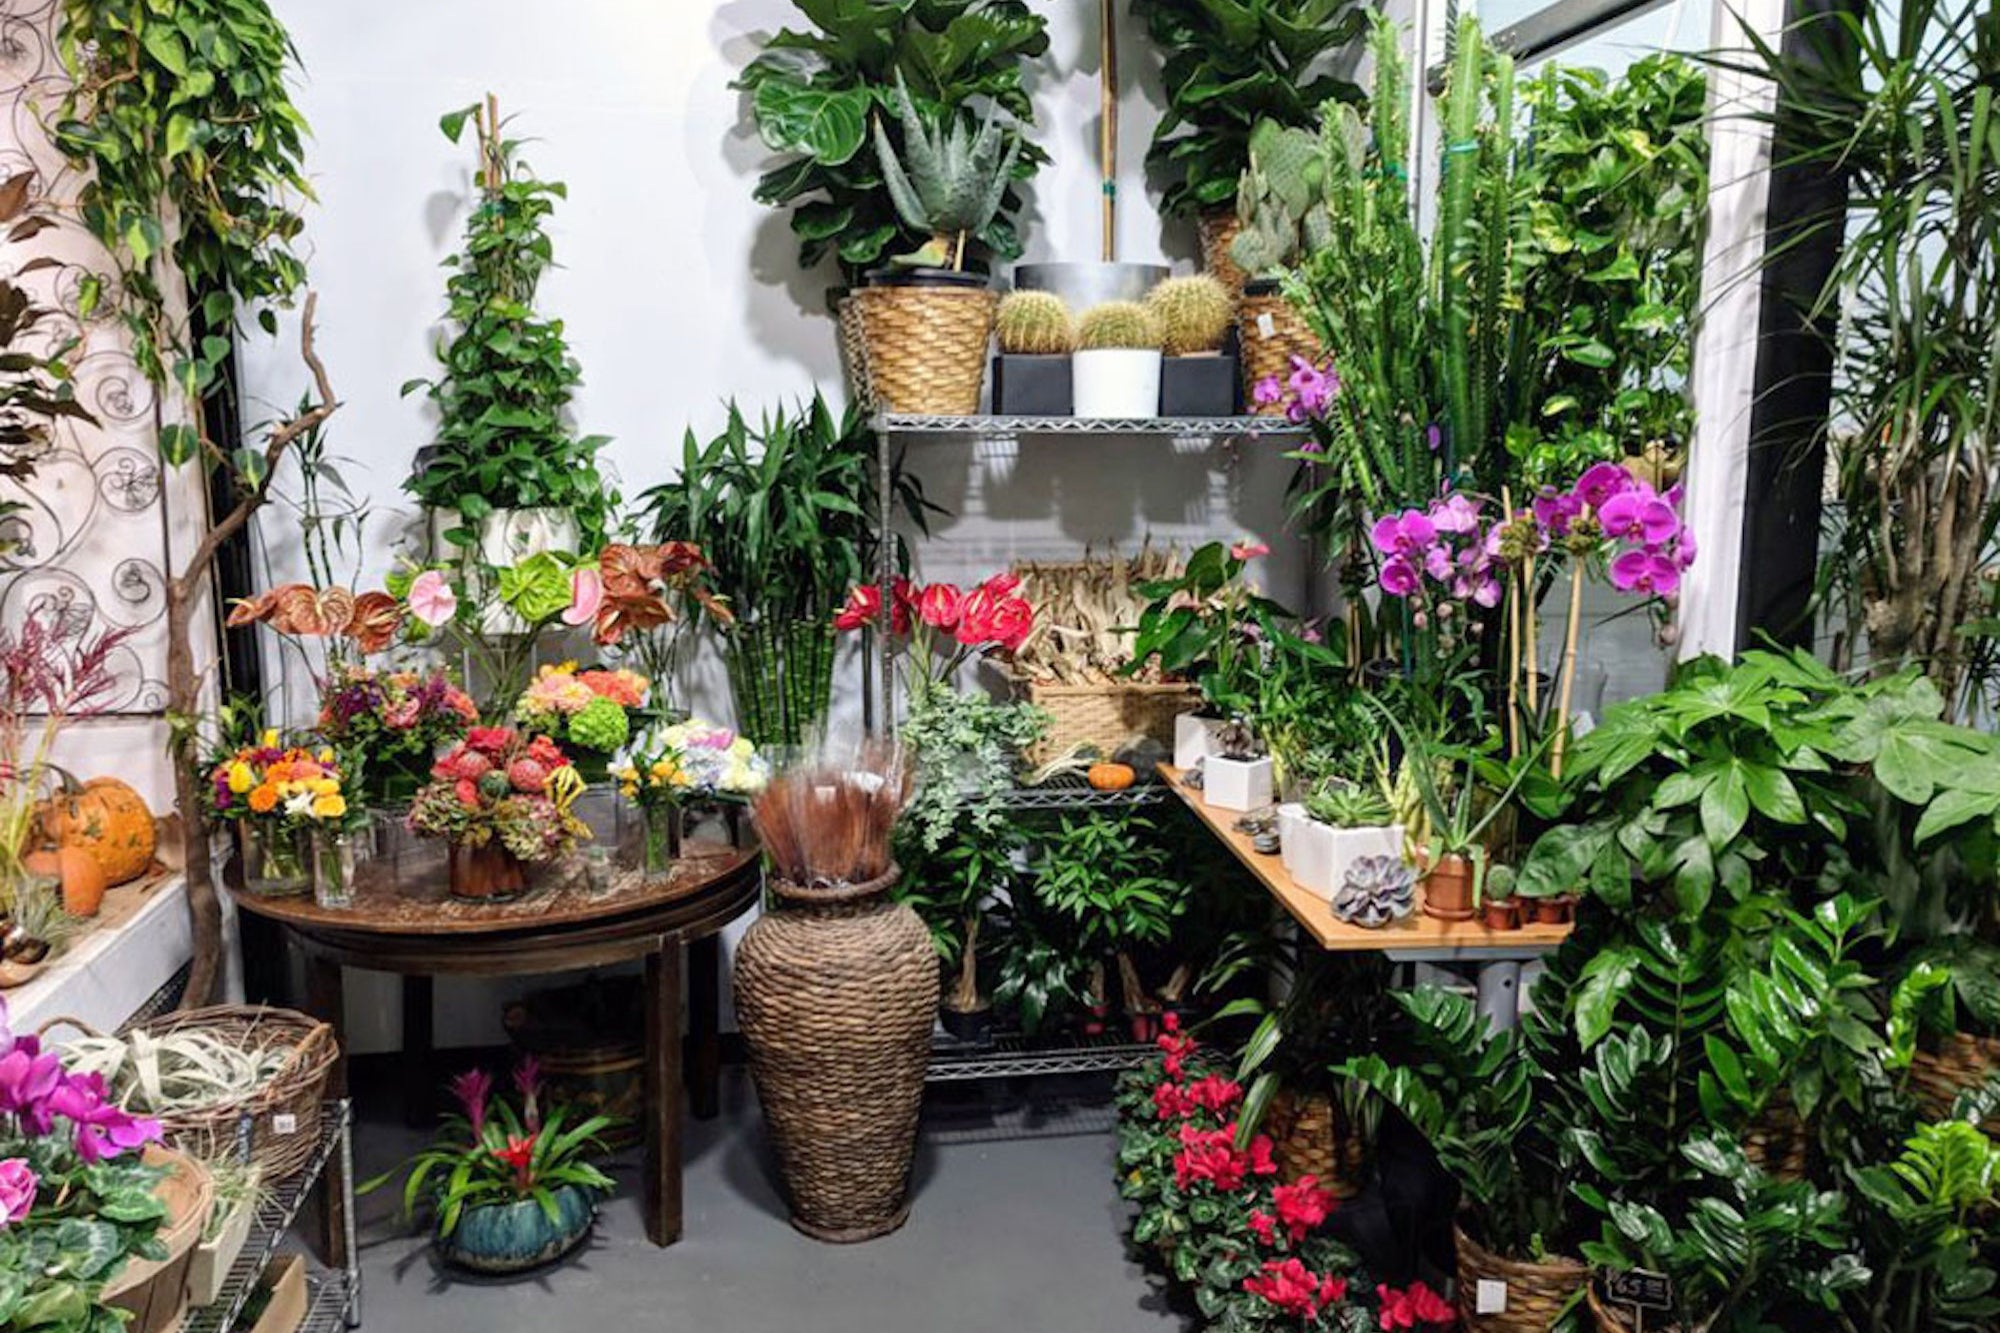 How An Above-and-Beyond Floral Experience Led to a Lifetime Customer